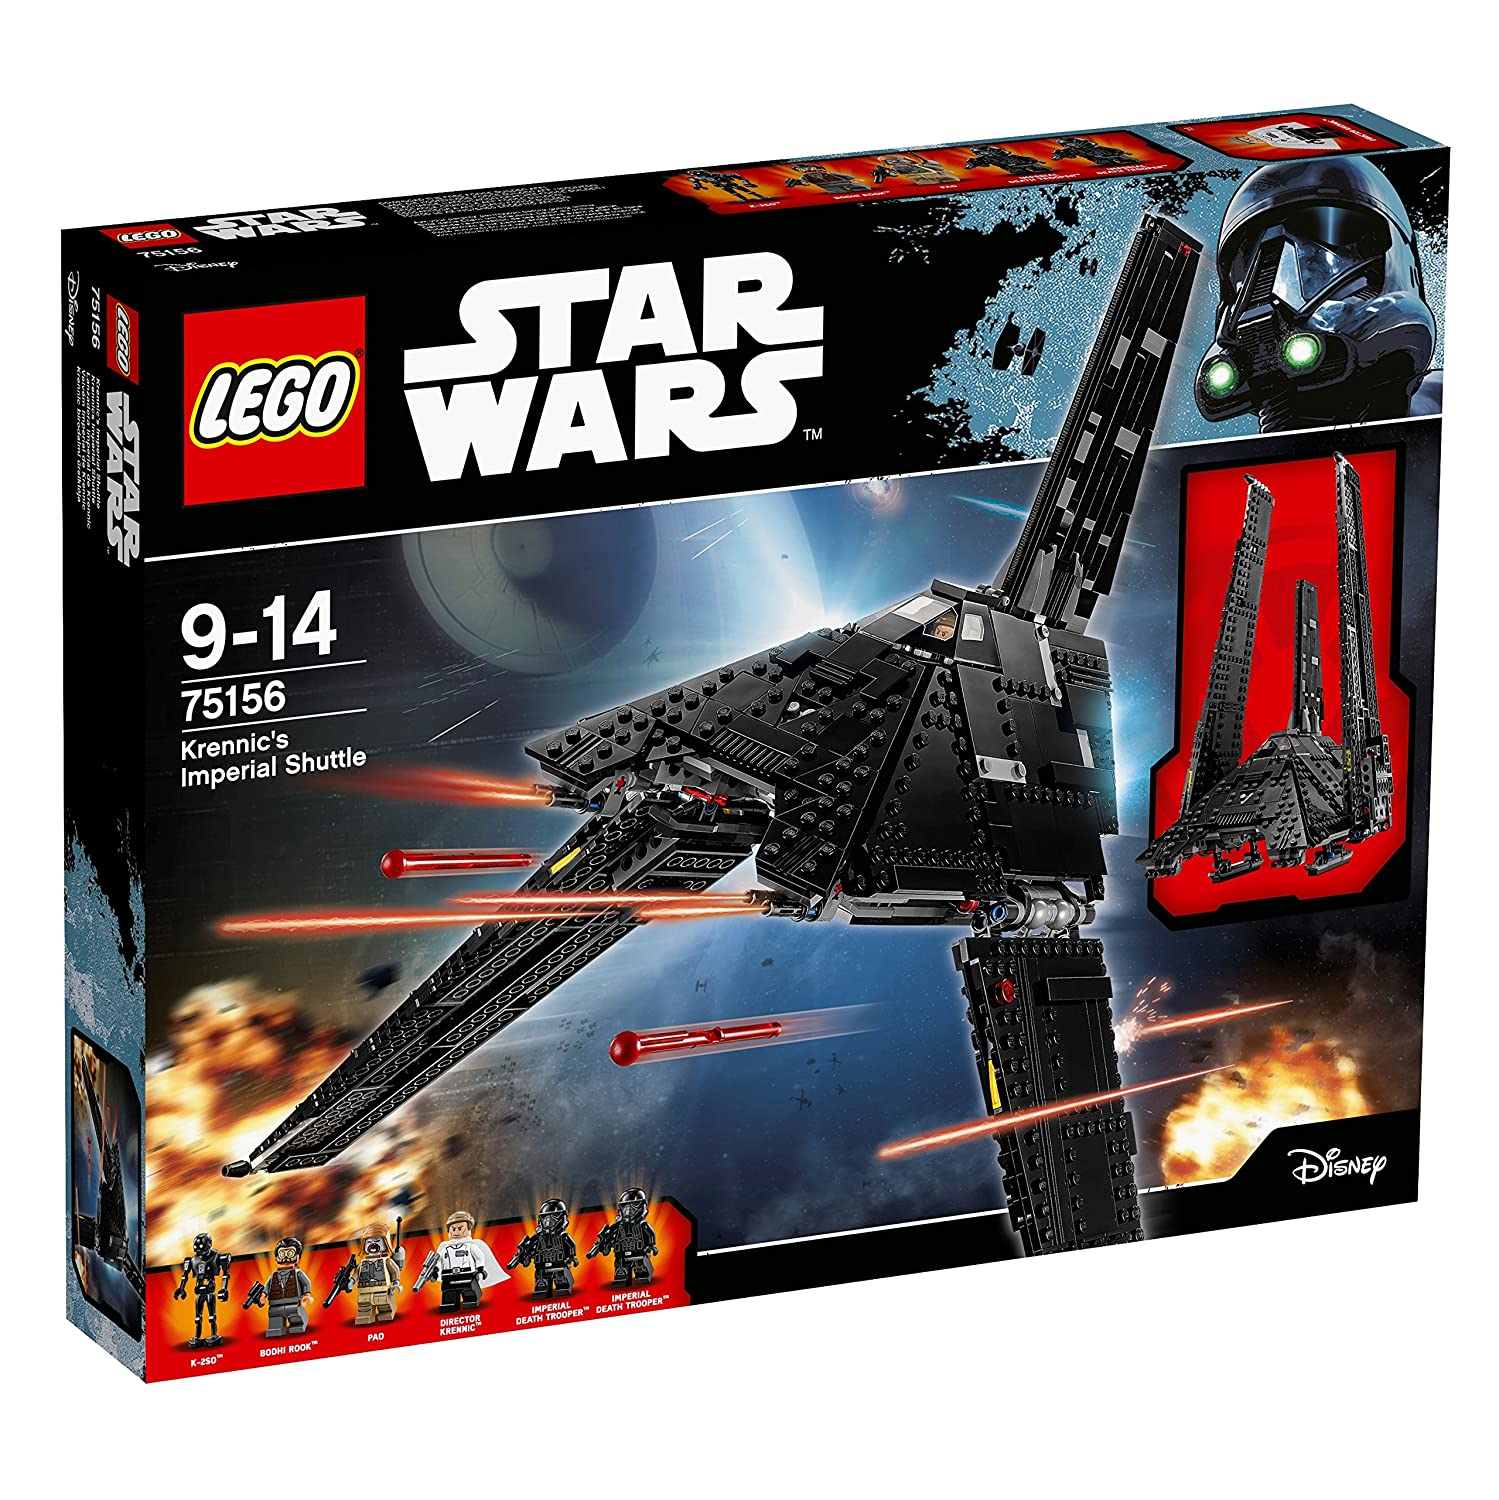 Lego 75156 Star Wars Krennics Imperial Shuttle Lego Amazon